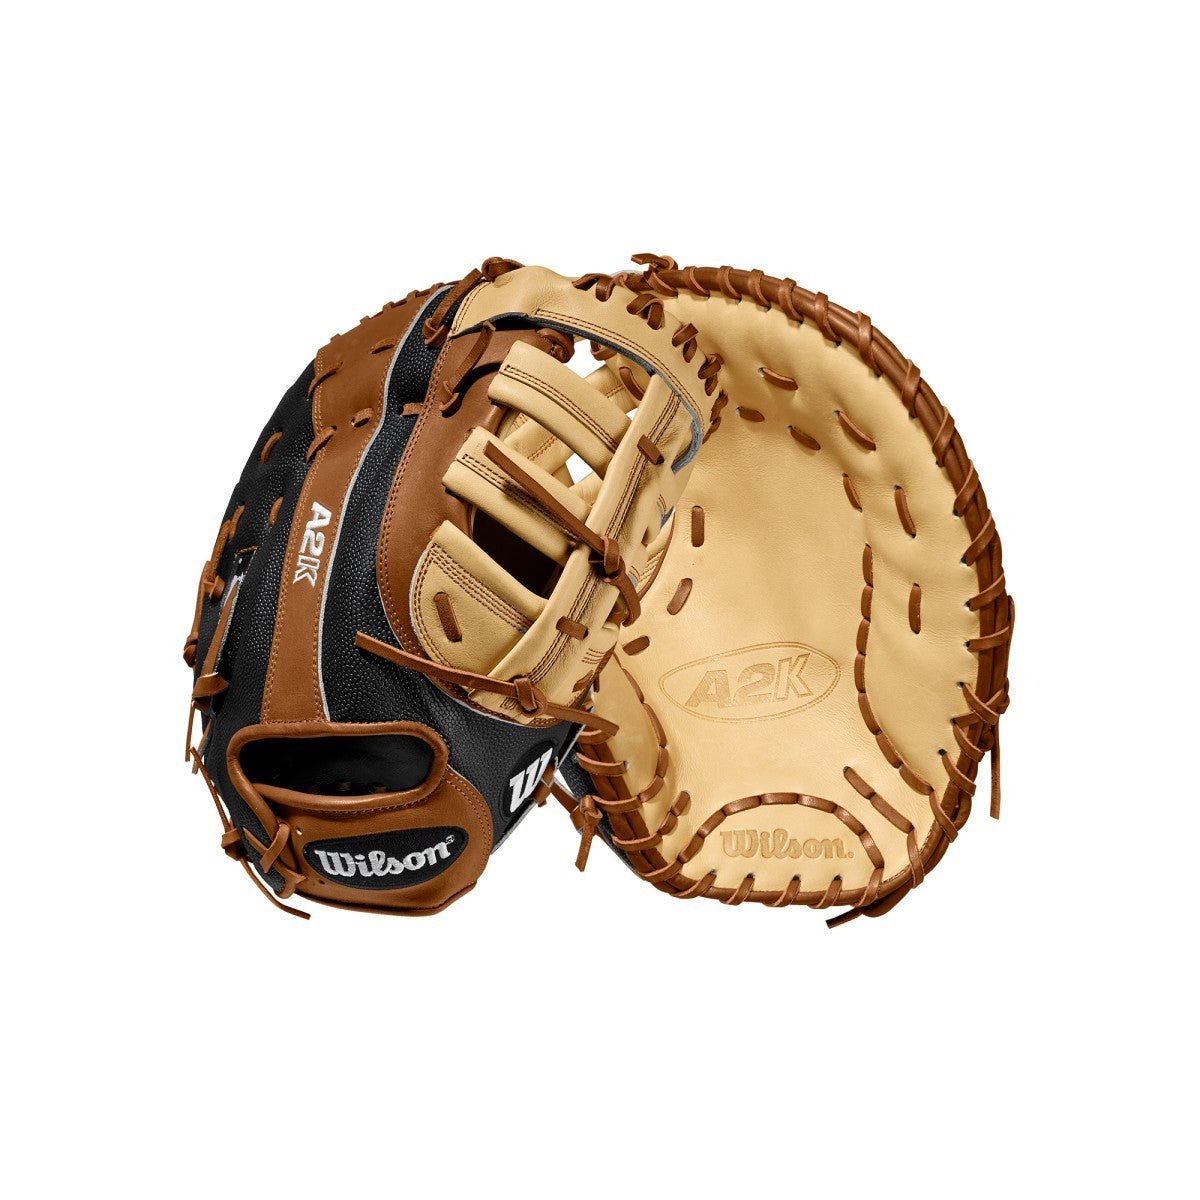 Best Baseball Gloves 2020 2020 A2K 2820SS 12.25